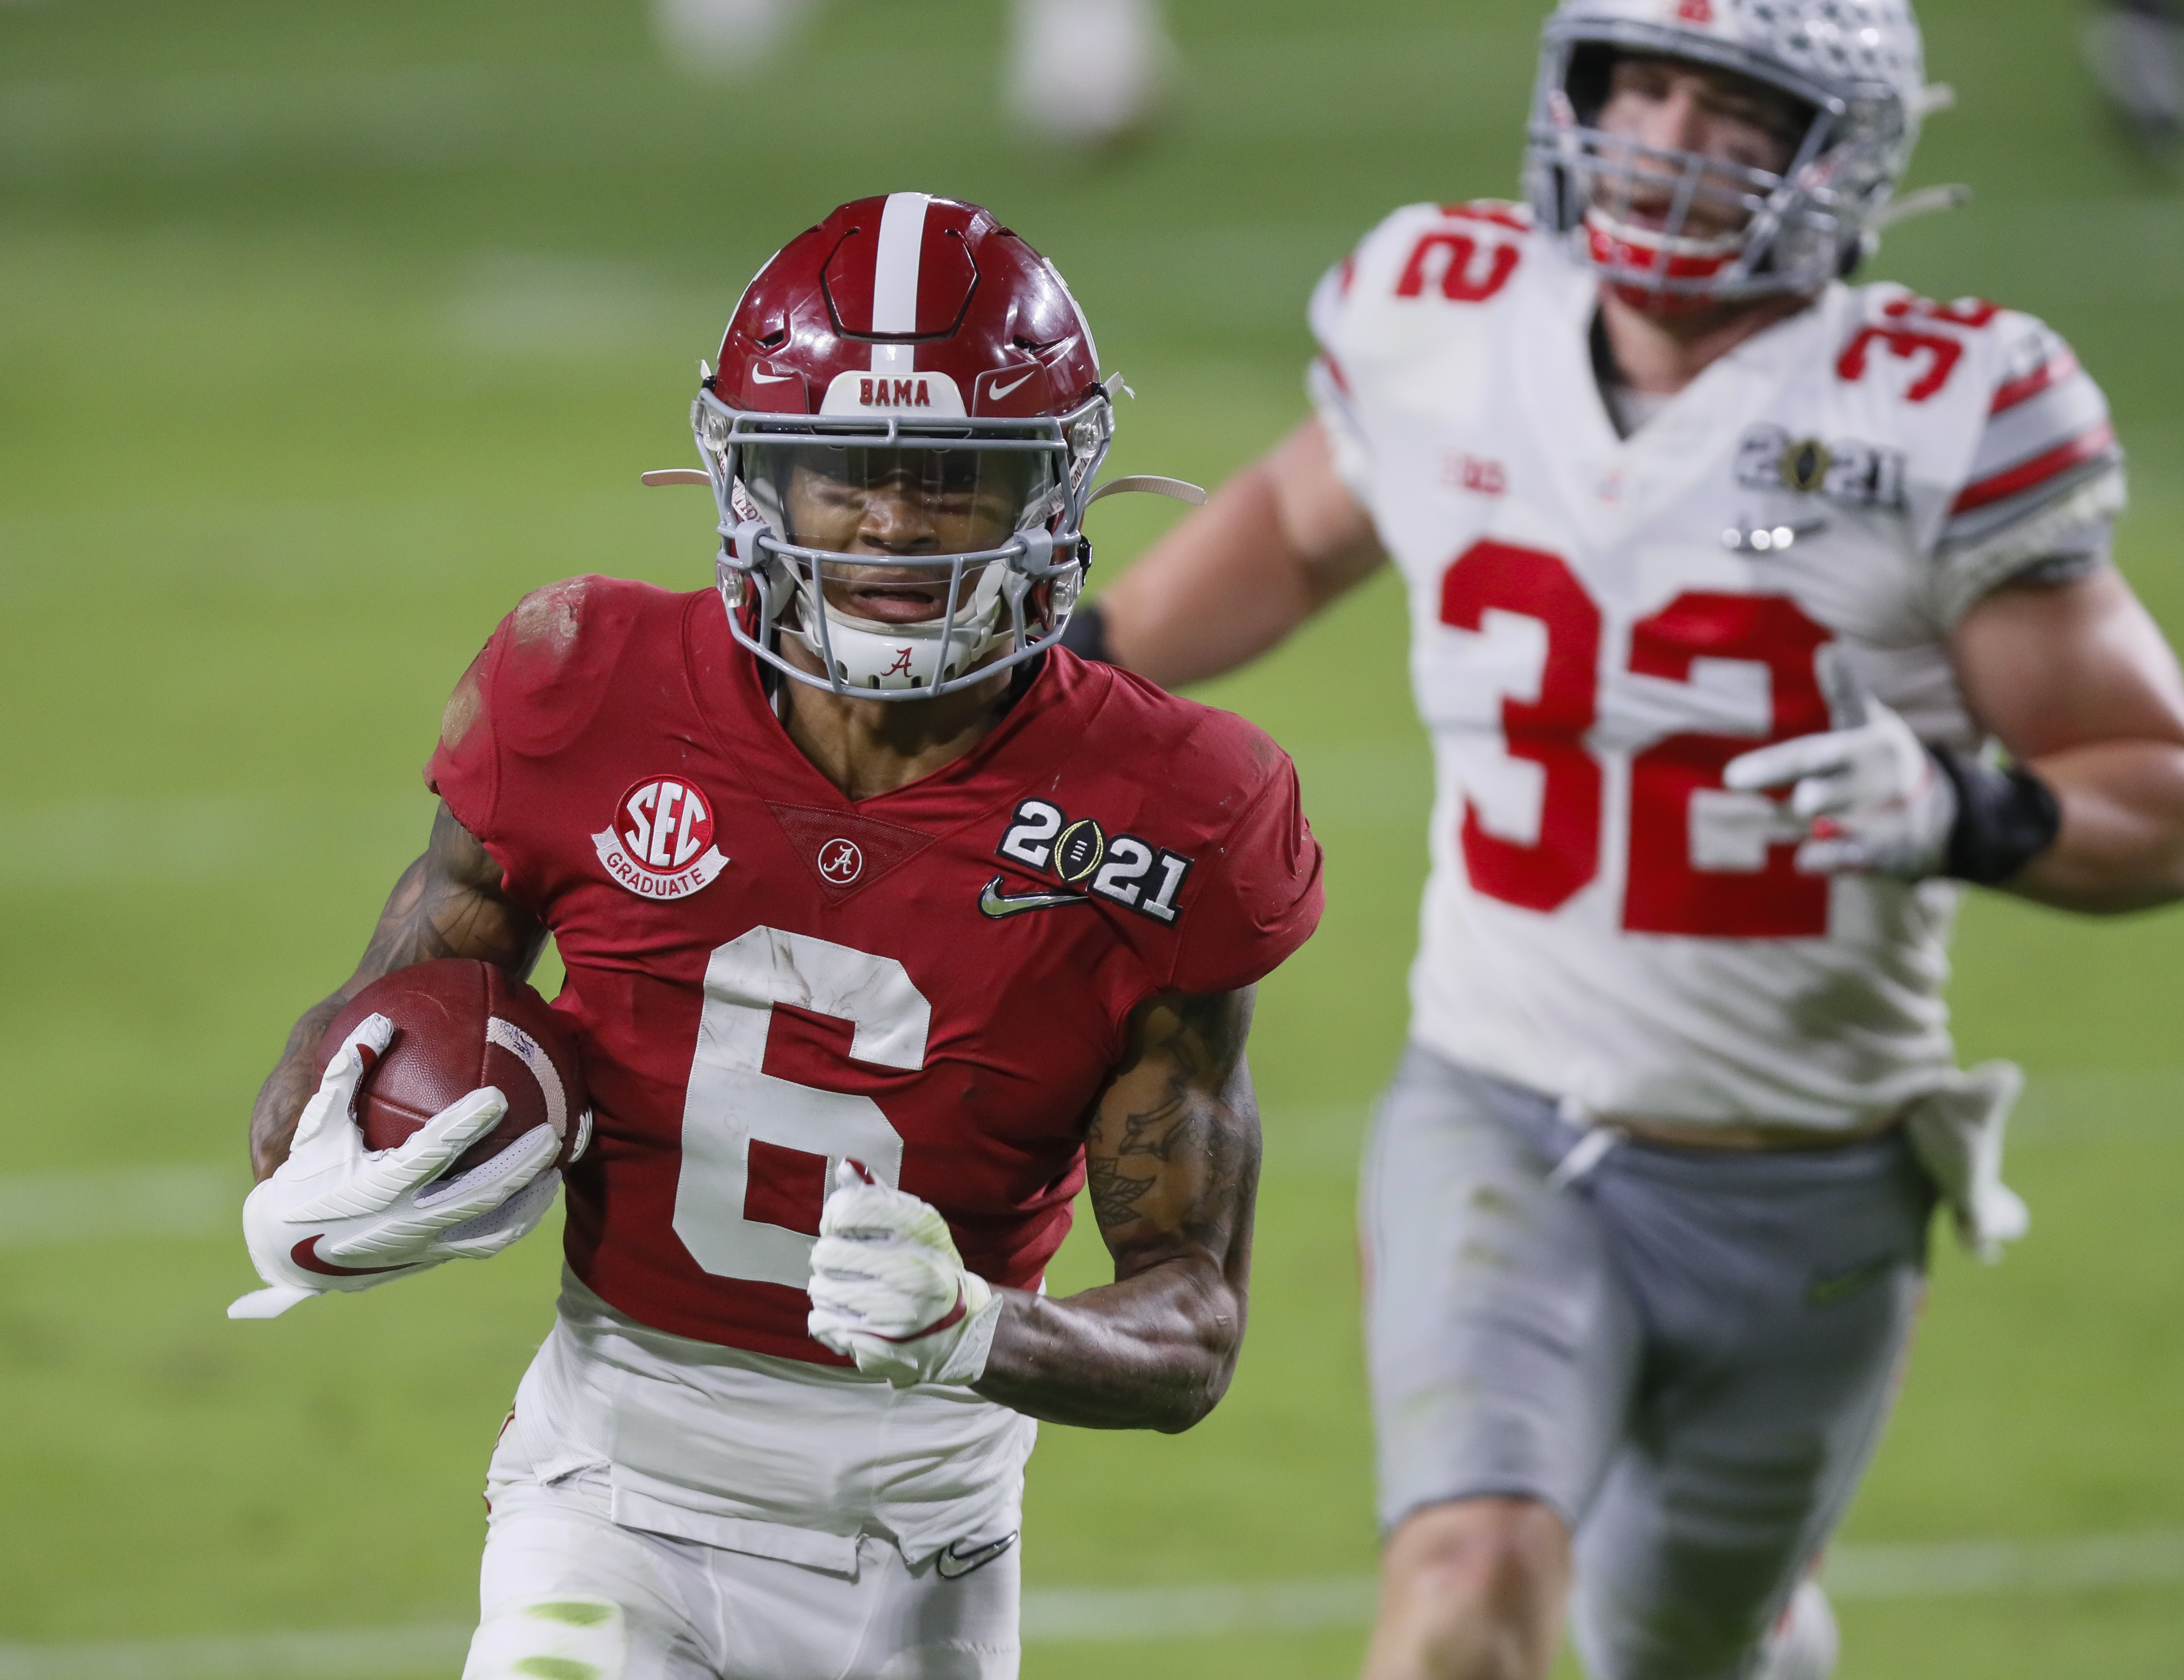 Alabama Crimson Tide wide receiver DeVonta Smith (6) catches a 42-yard touchdown behind Ohio State Buckeyes linebacker Tuf Borland (32) during the second quarter of the College Football Playoff National Championship at Hard Rock Stadium in Miami Gardens, Fla.